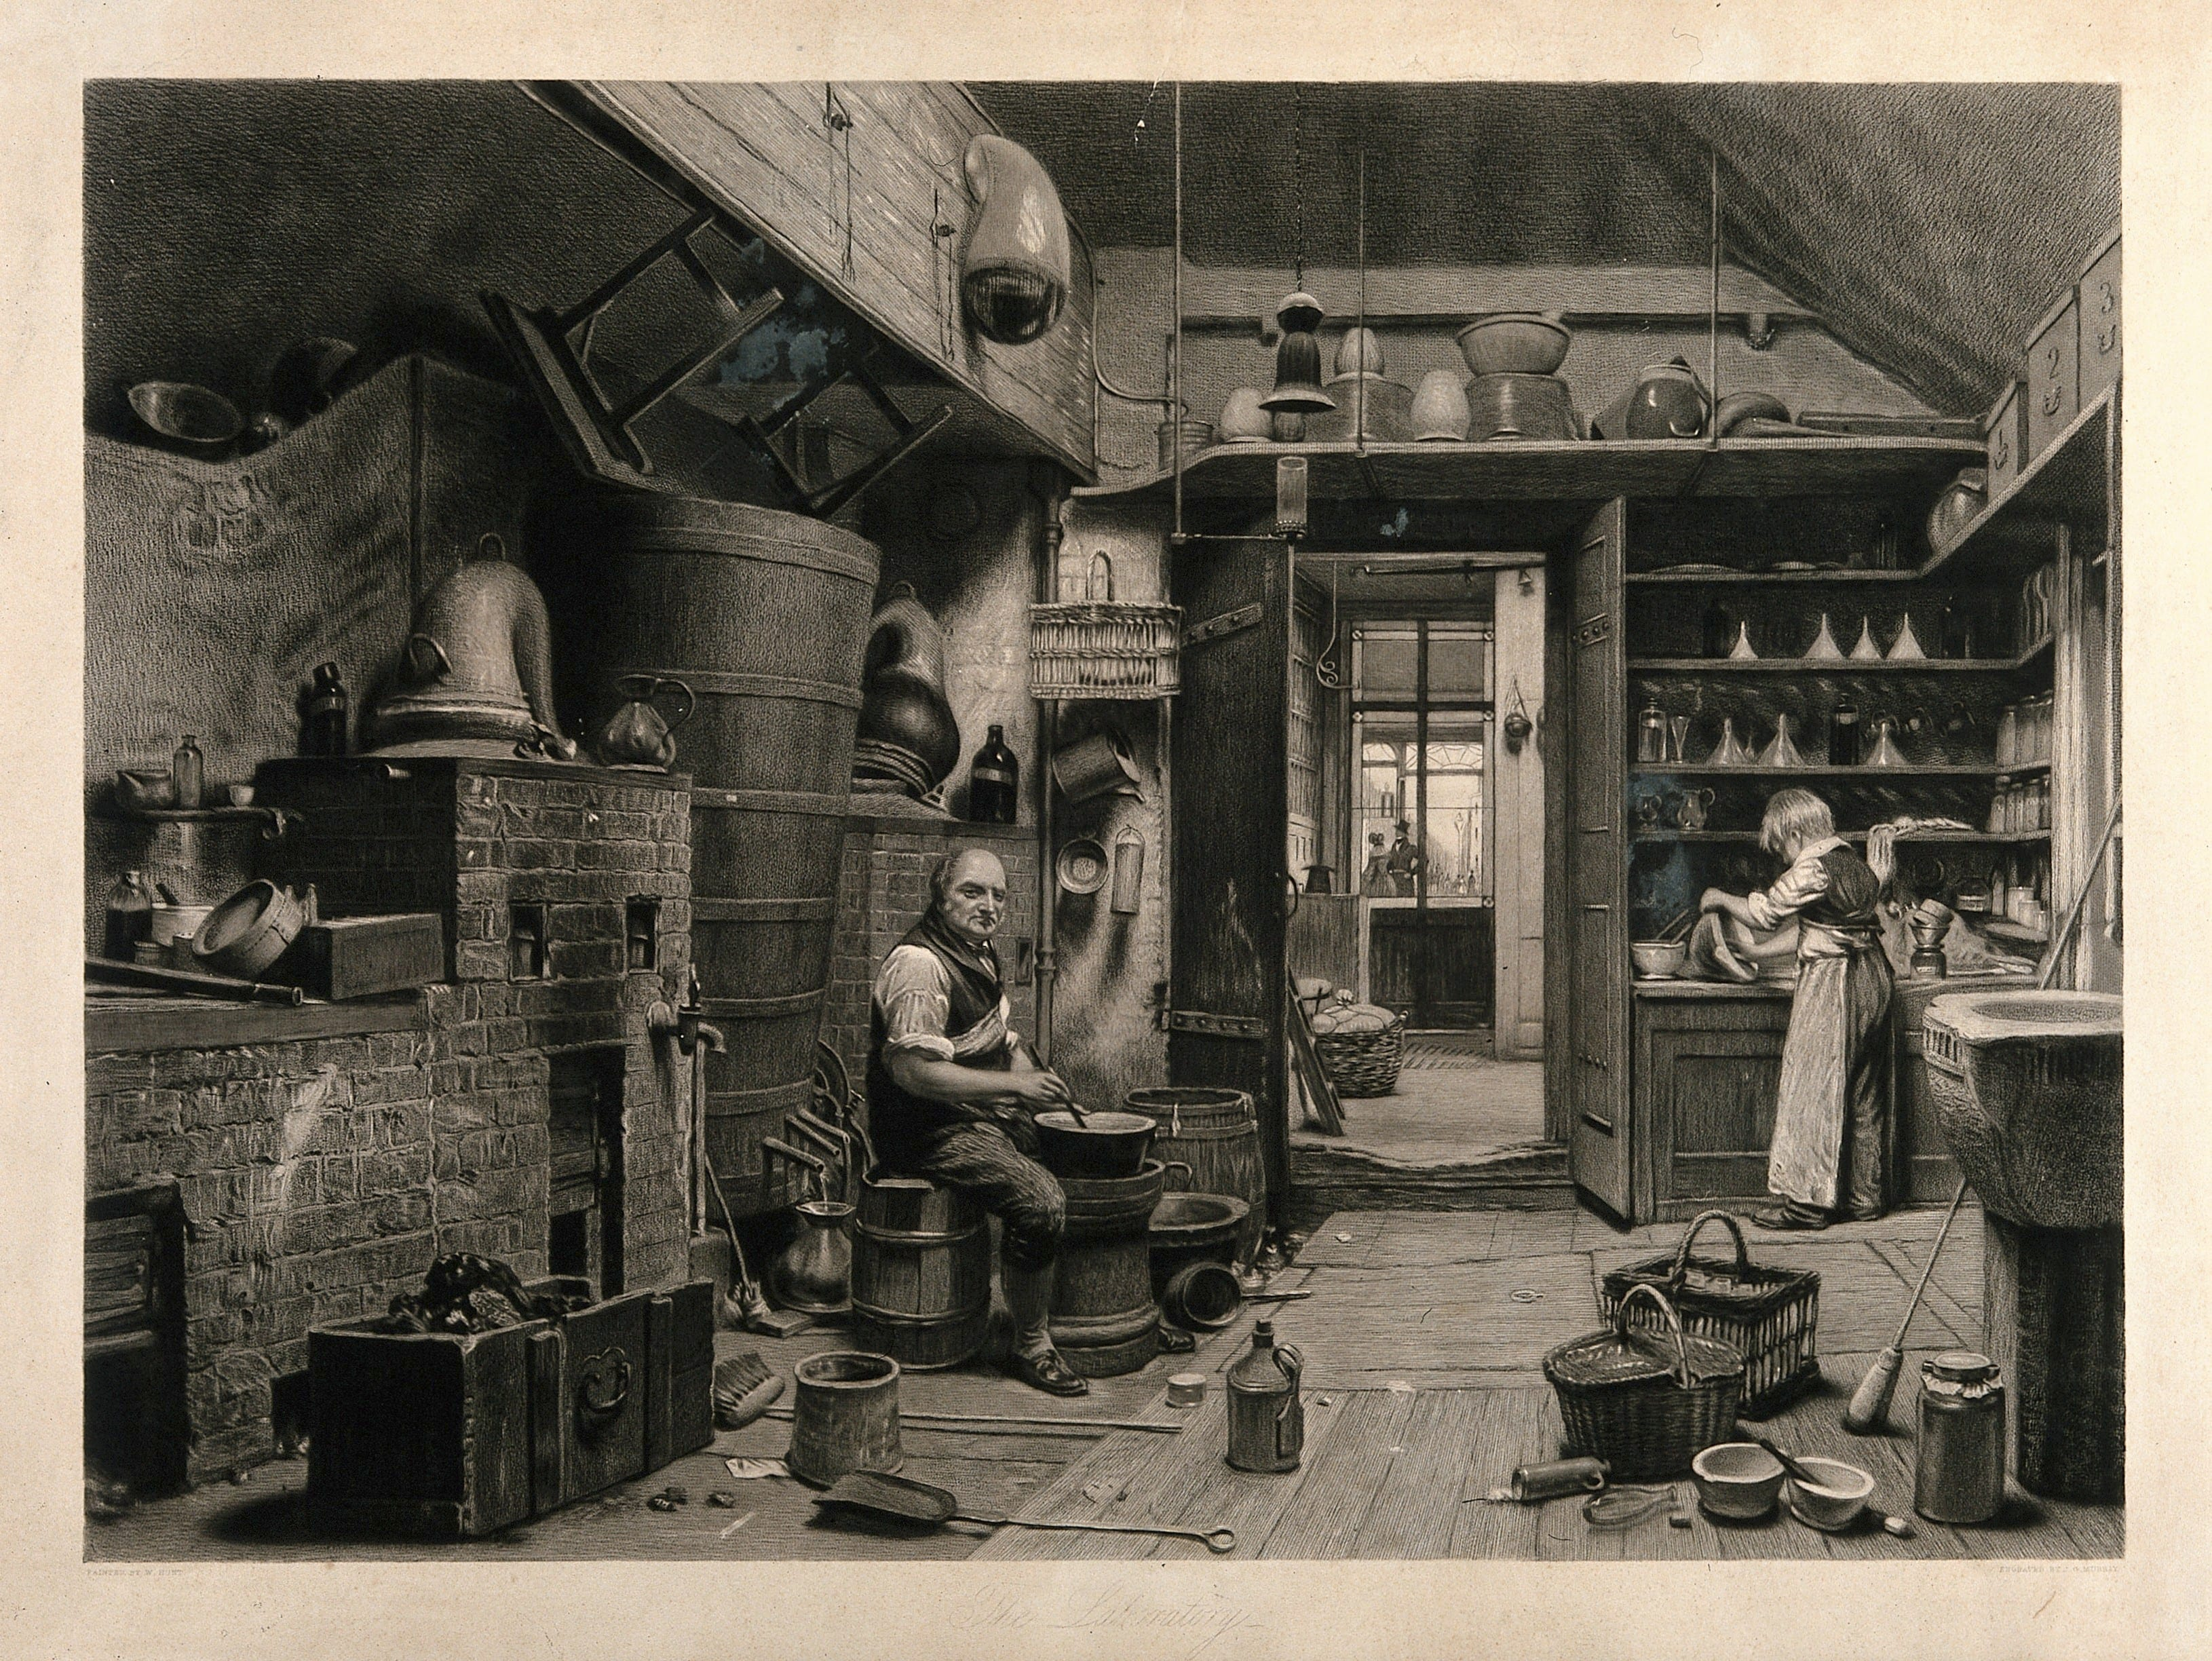 c853ca40d6c8 John Simmons and his apprentice working in the laboratory of John Bell's  pharmacy in Oxford Street. Engraving by J. G. Murray, 1842, after W. H.  Hunt.